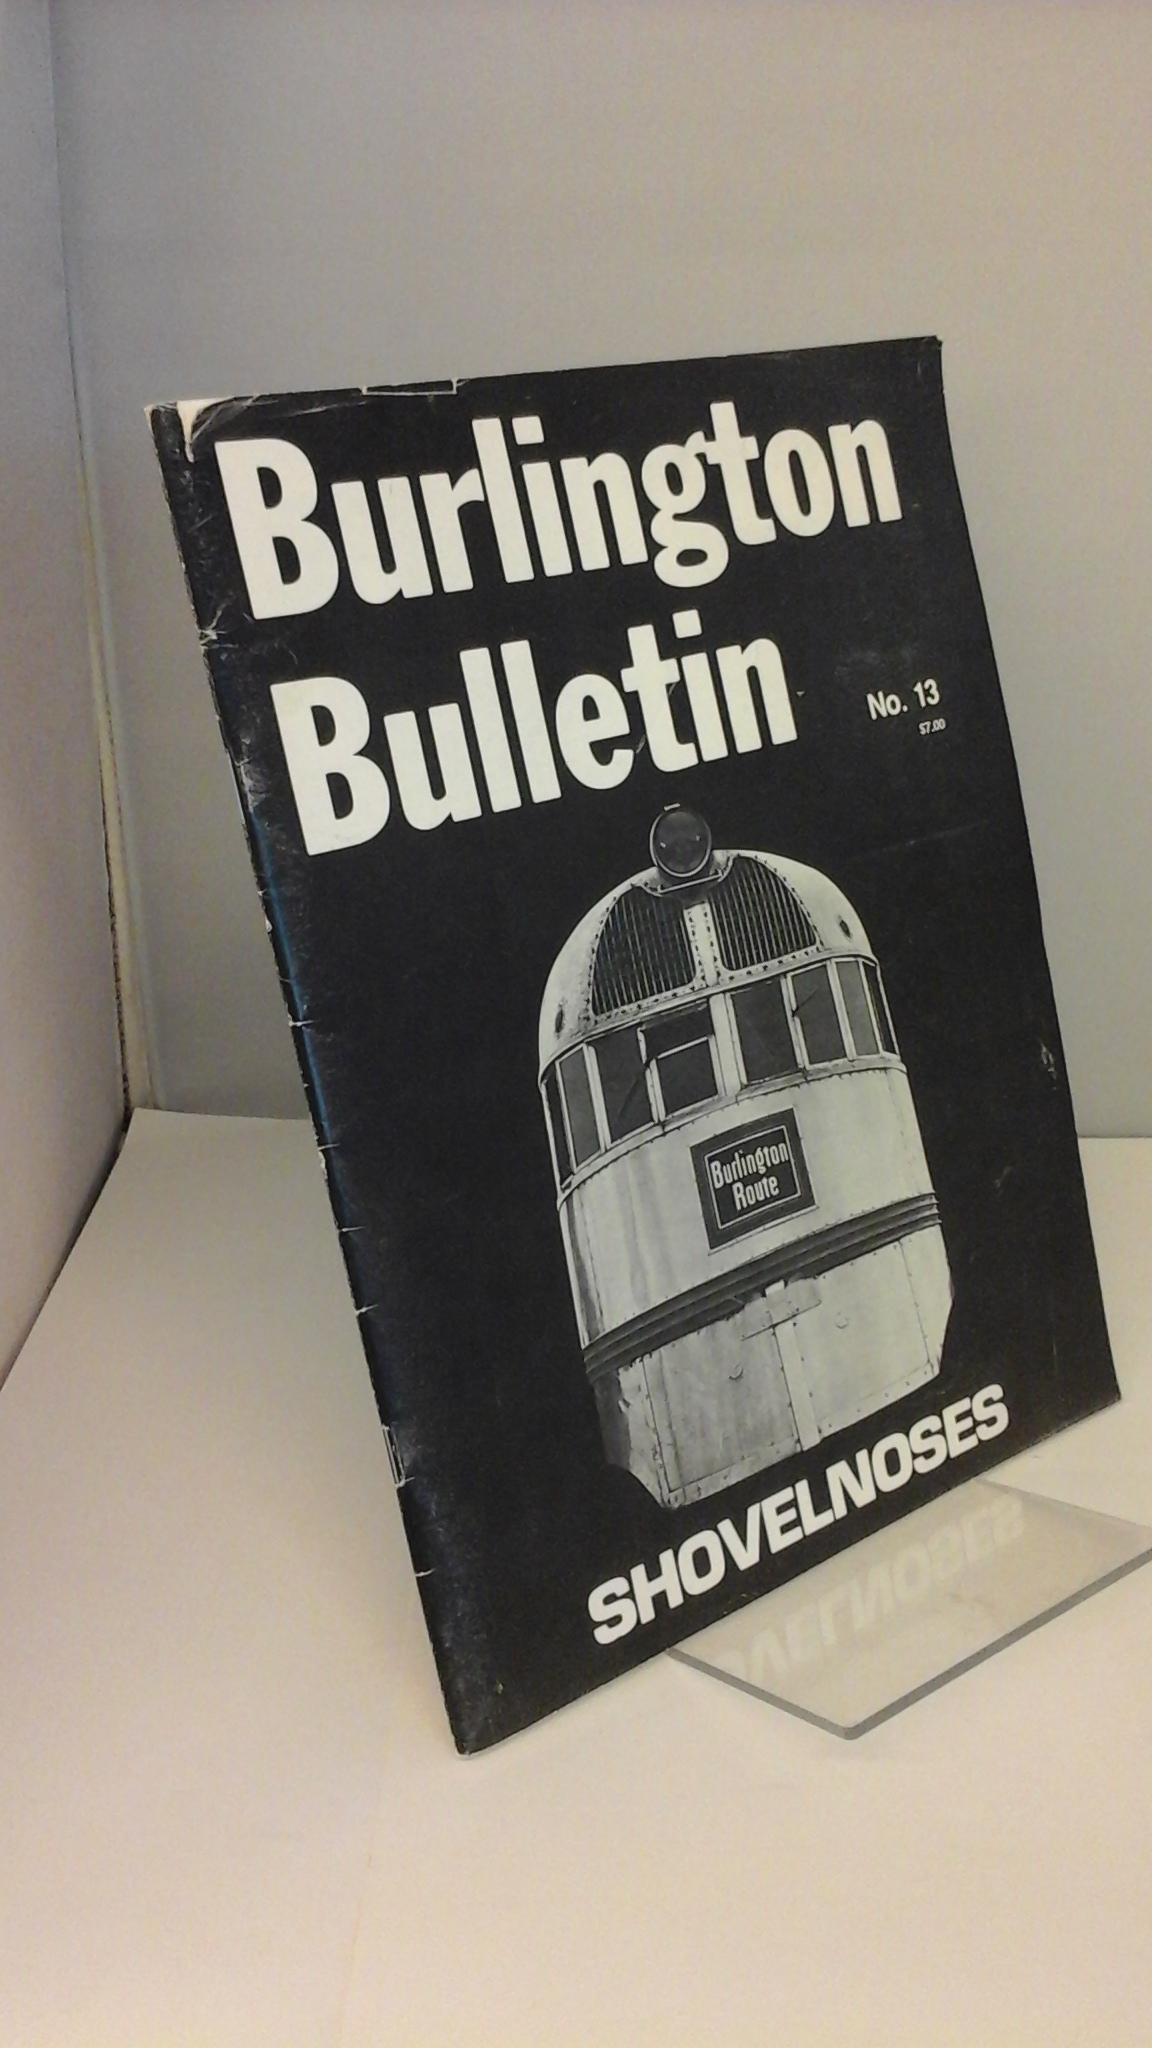 Image for Burlington Bulletin No. 13 - Shovelnoses